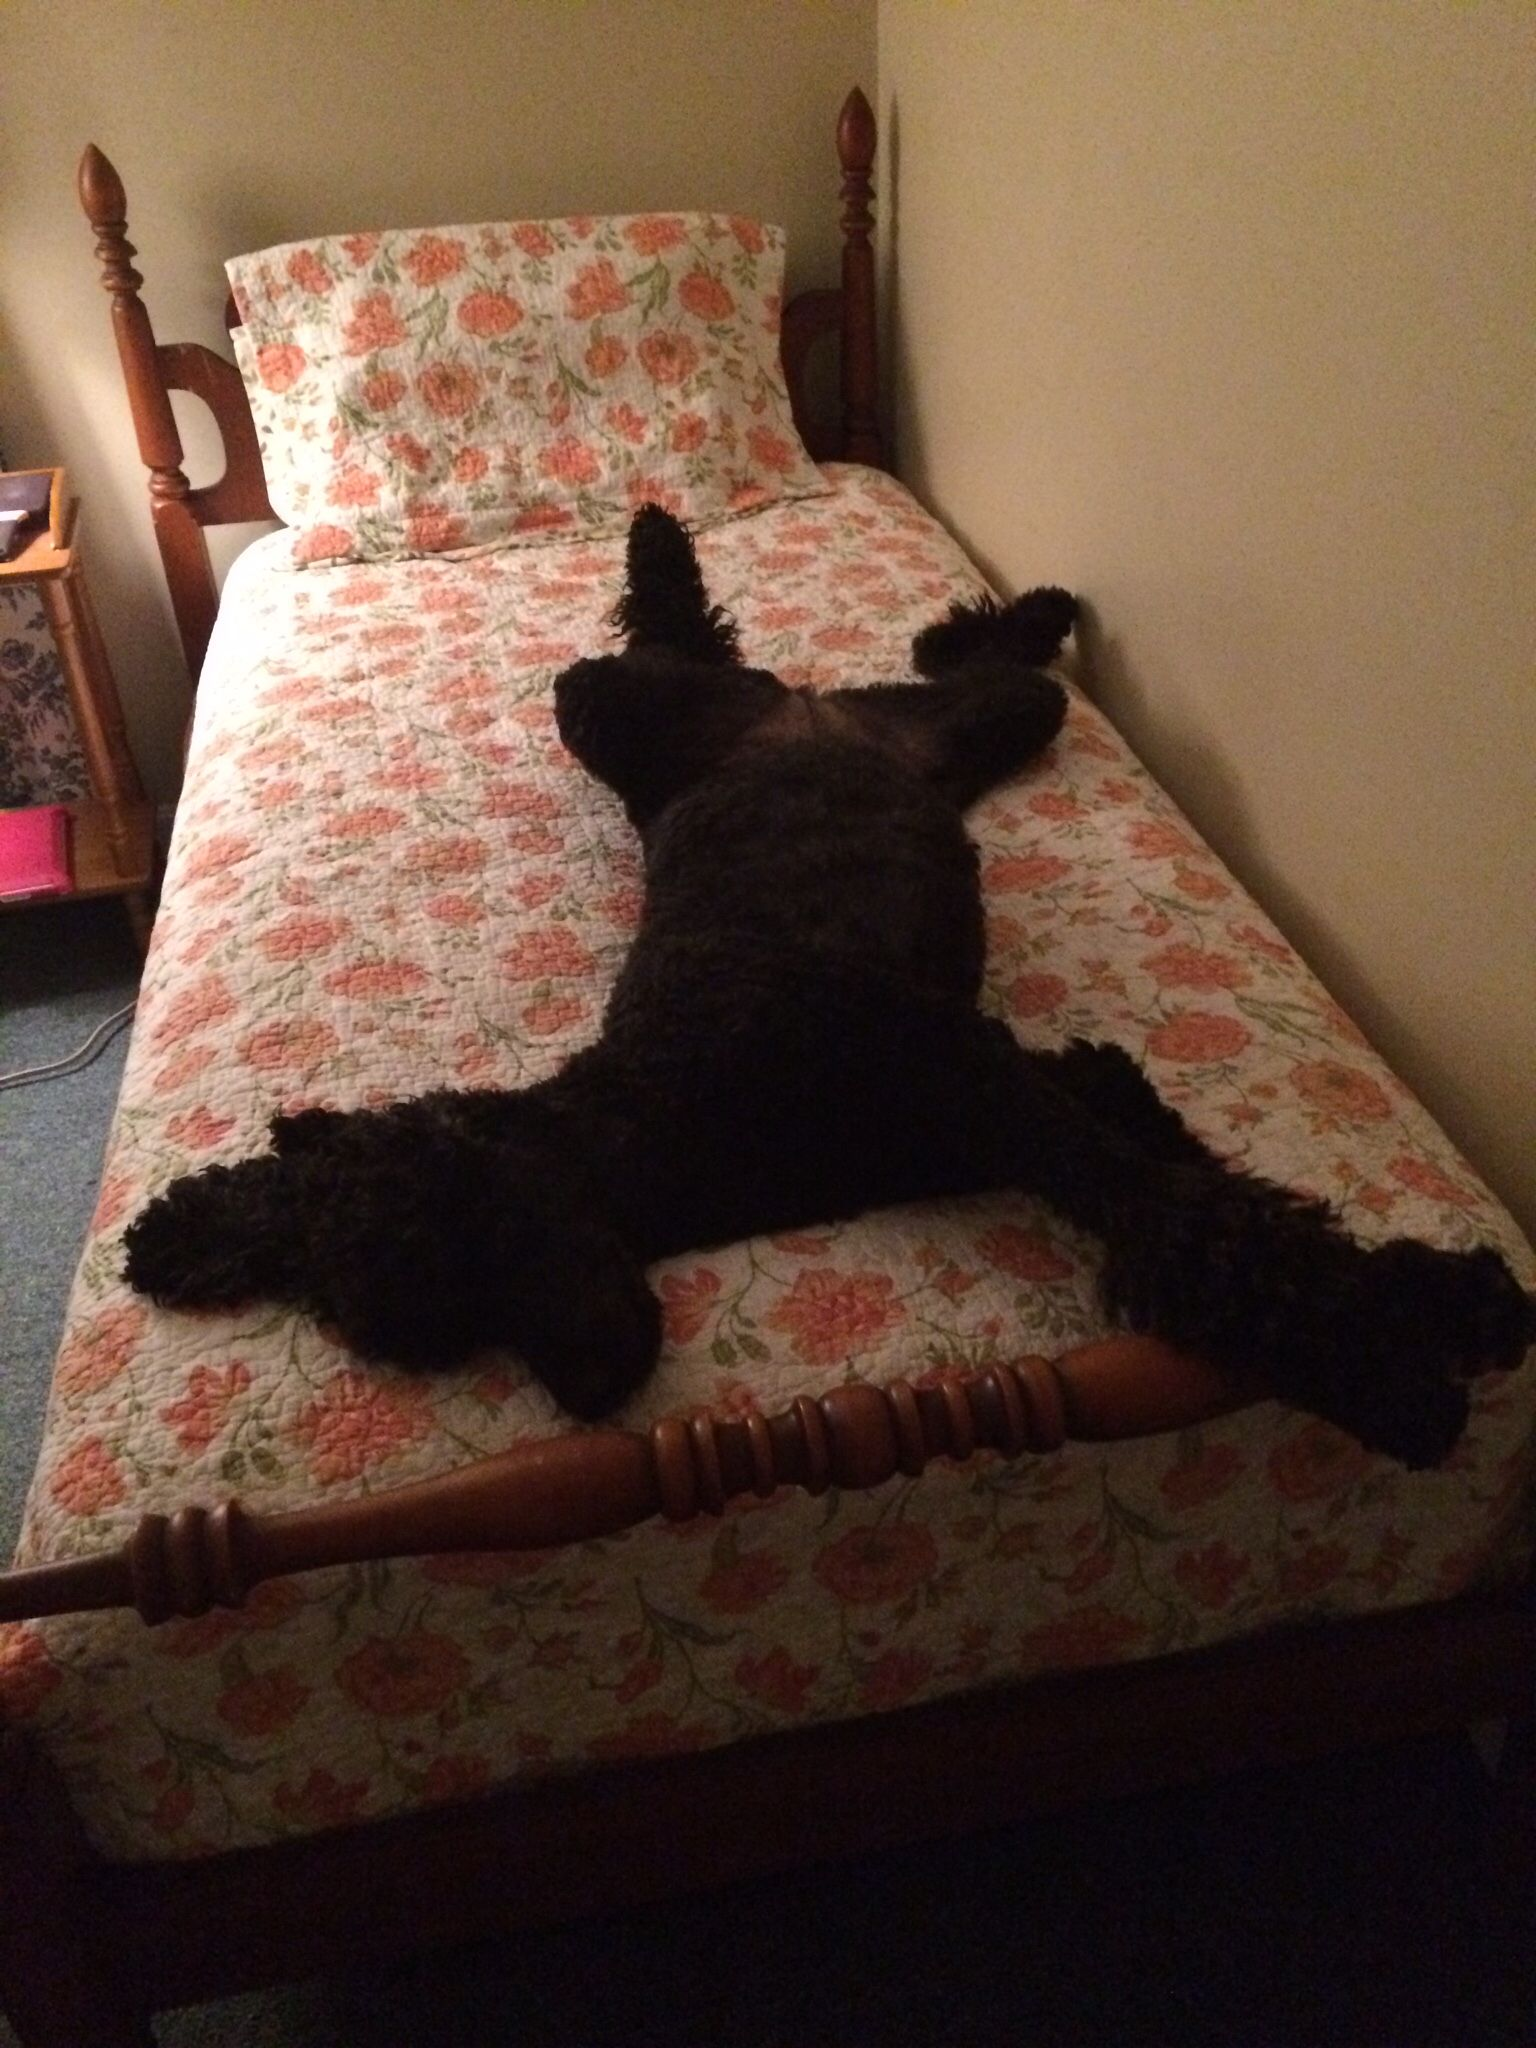 Say hi to Abby... I think she has her own bed? Poodle